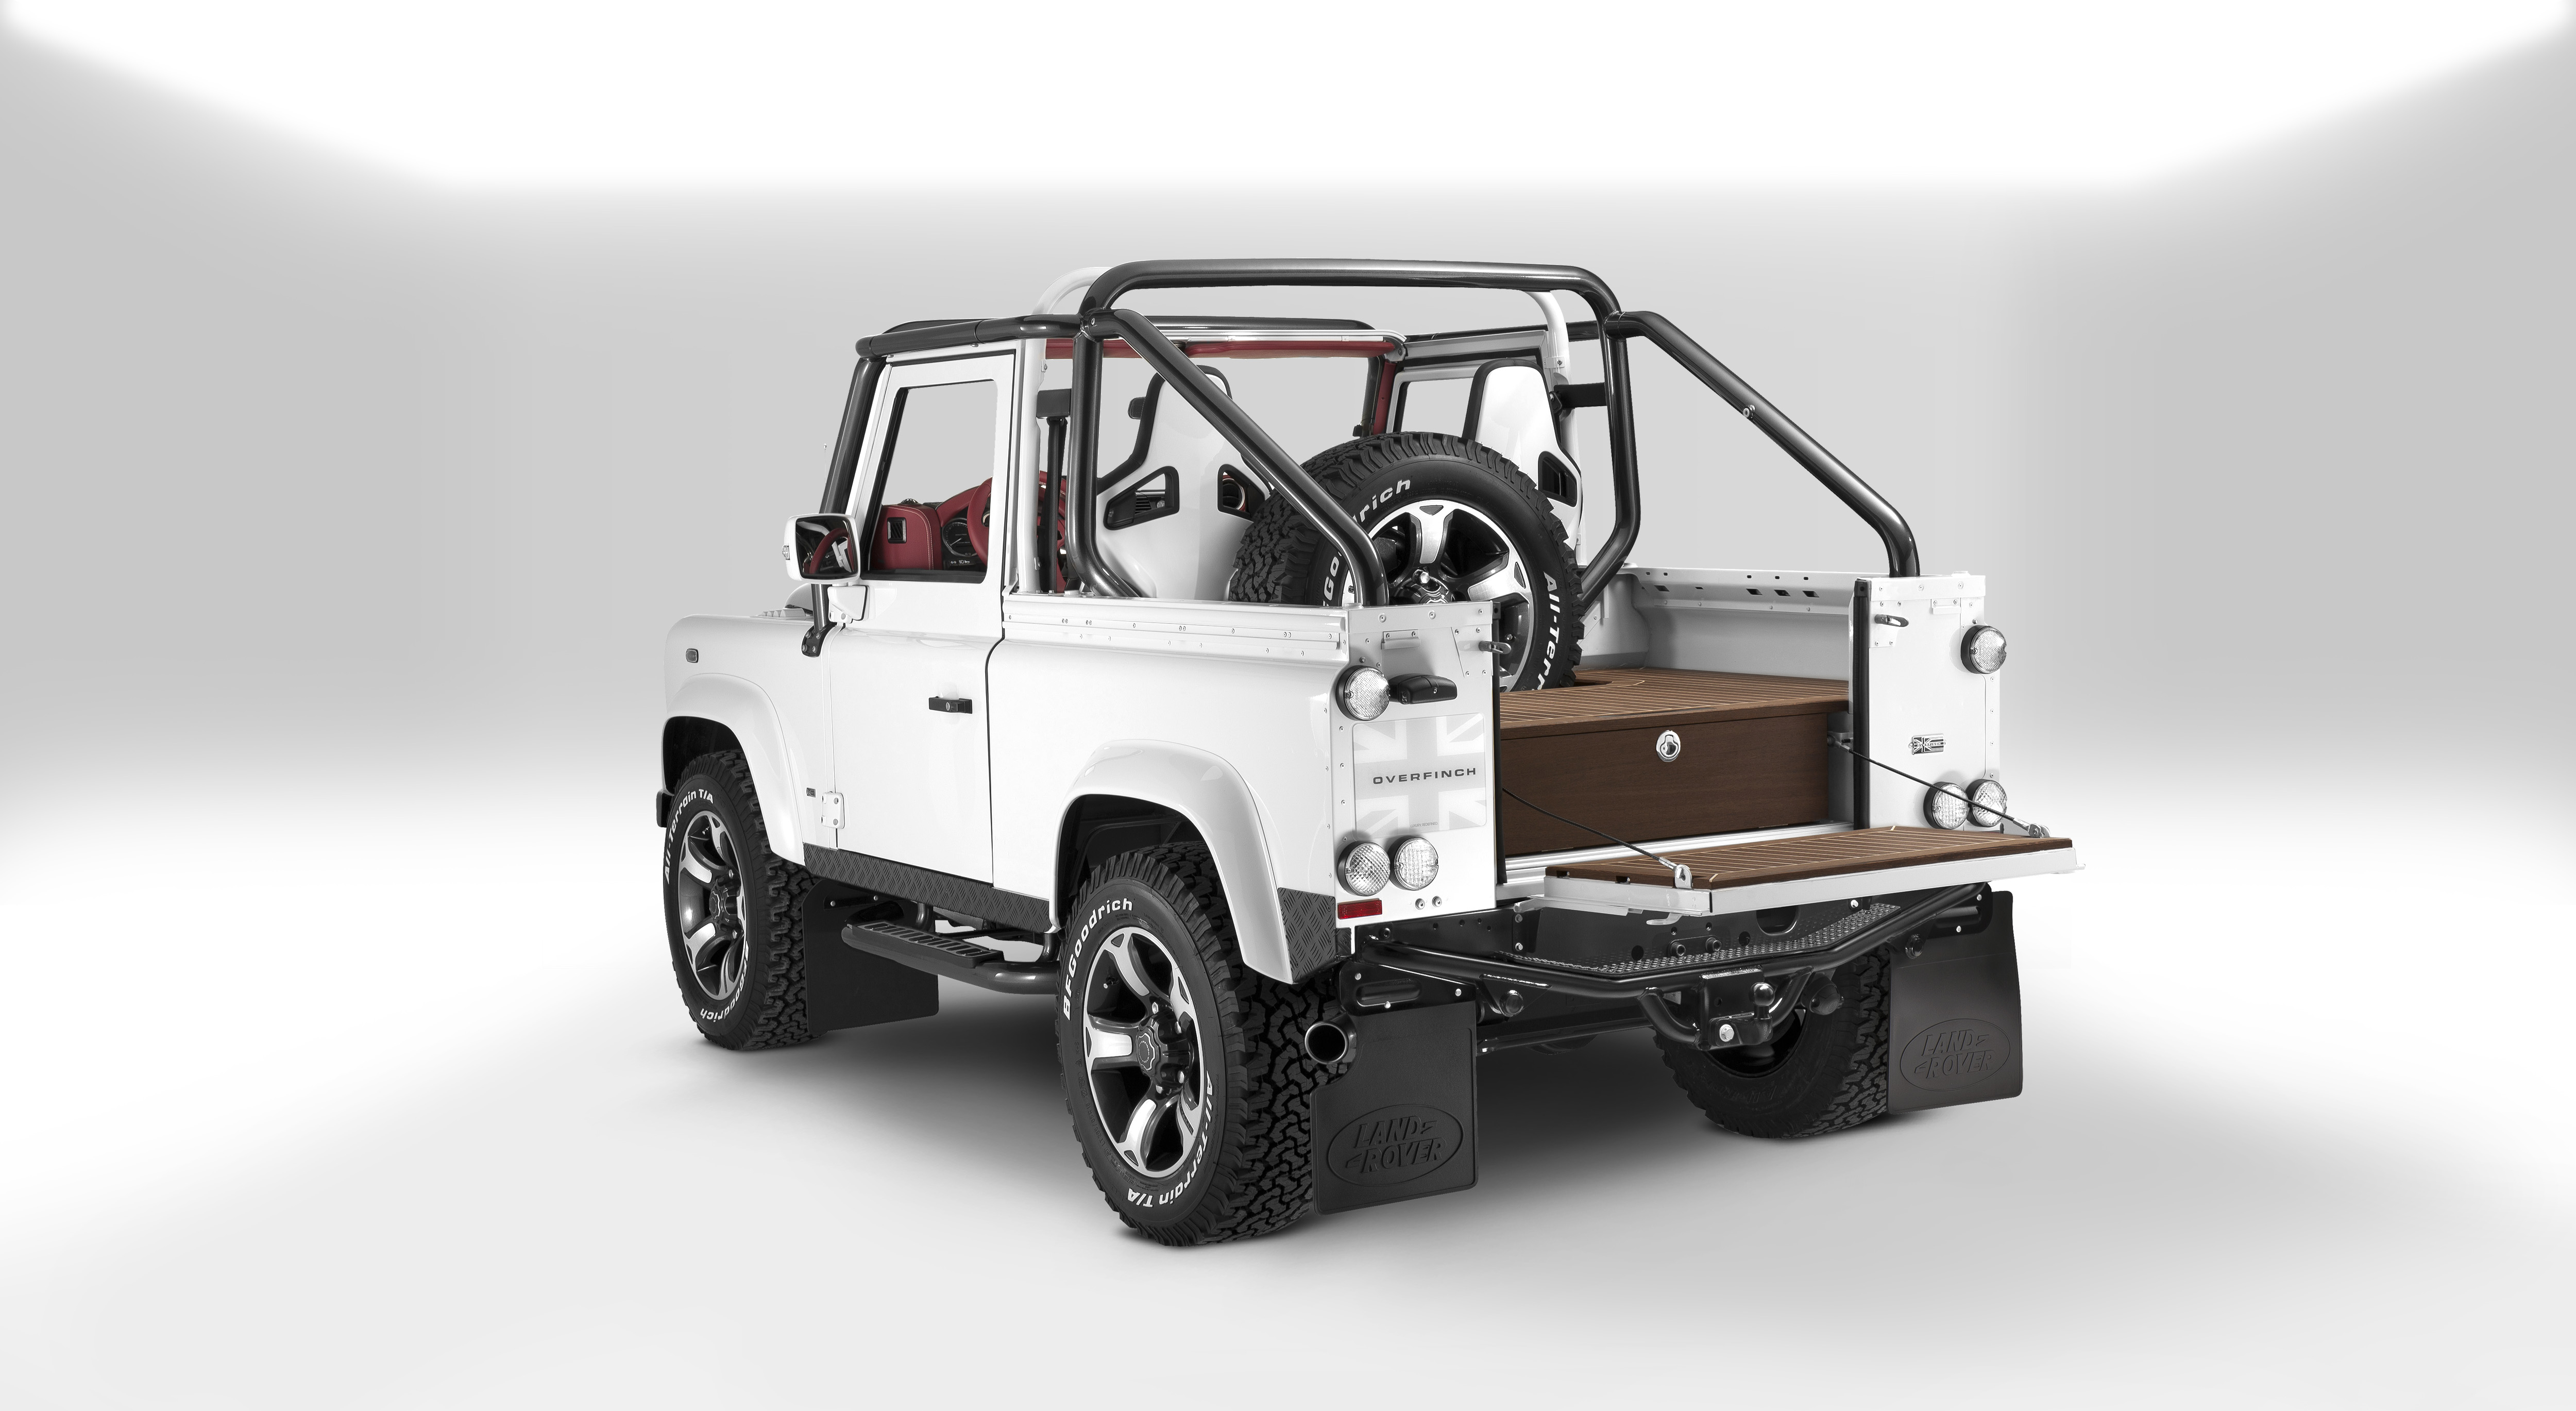 land by edition anniversary defender custom dashboard rover designfather father design landrover the overfinch